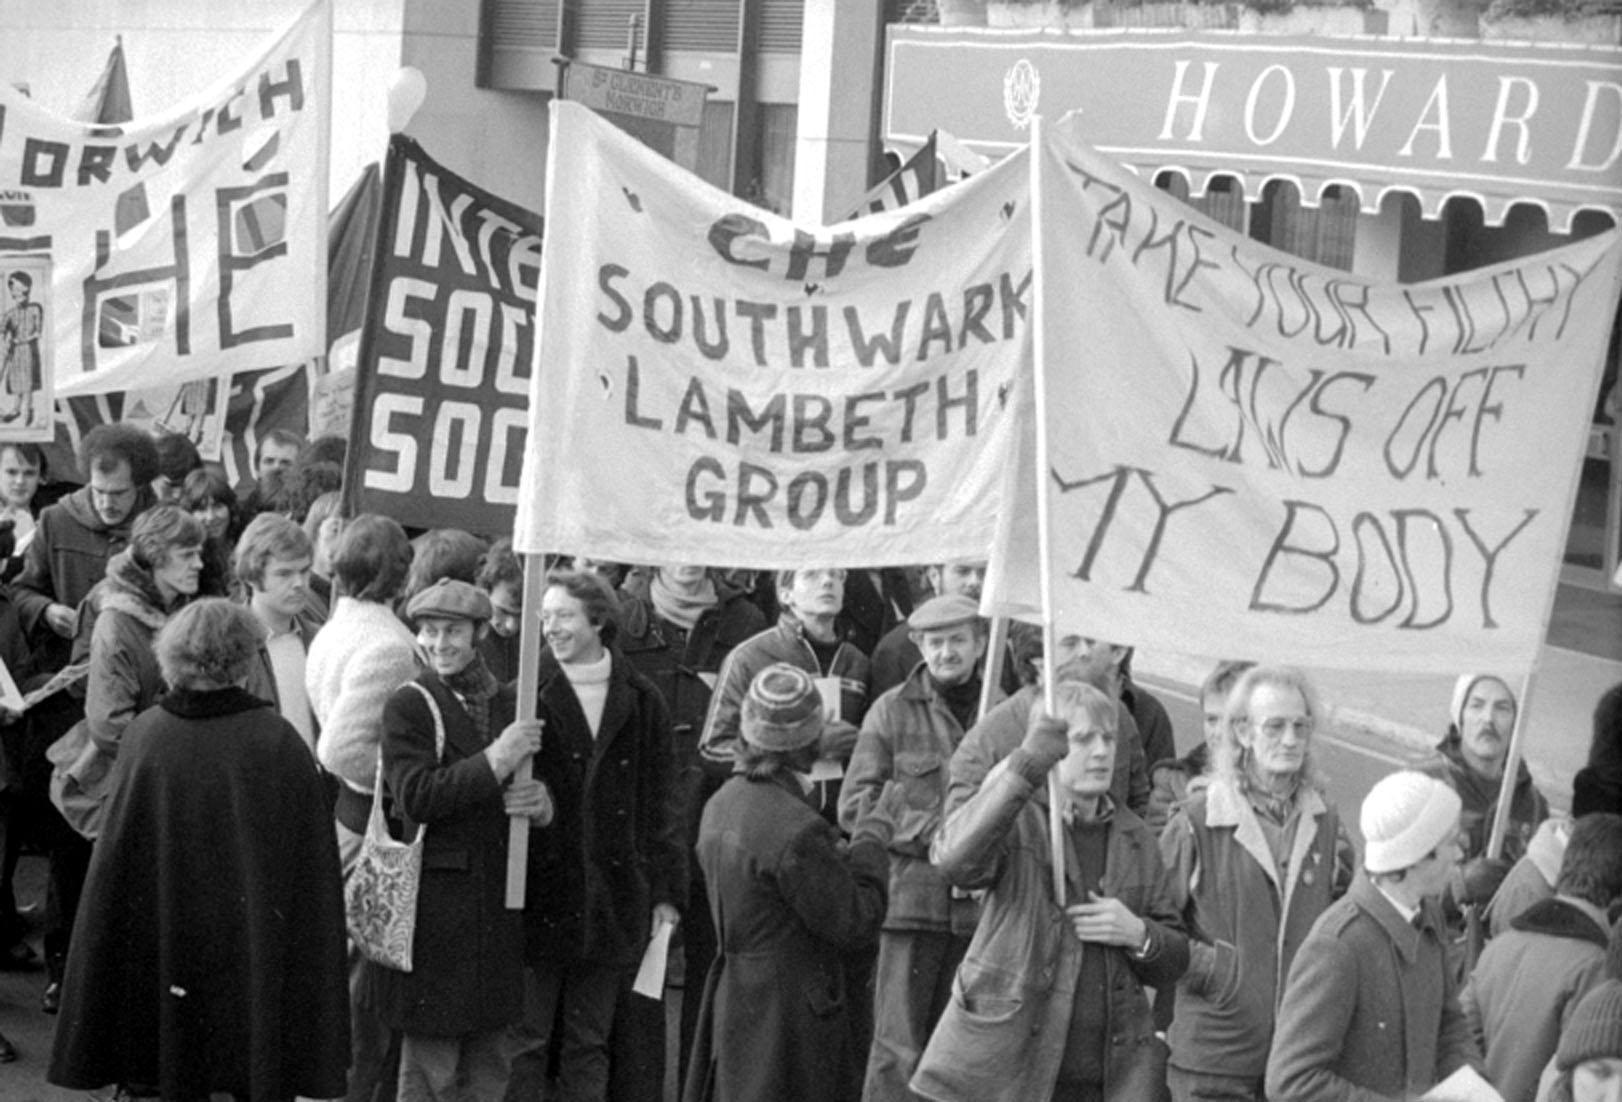 Demonstrators raise their banners as they leave the Embankment at Charing Cross on a march to Trafalgar Square for a rally organised by the National Gay News Defence Committee. 11/02/1978